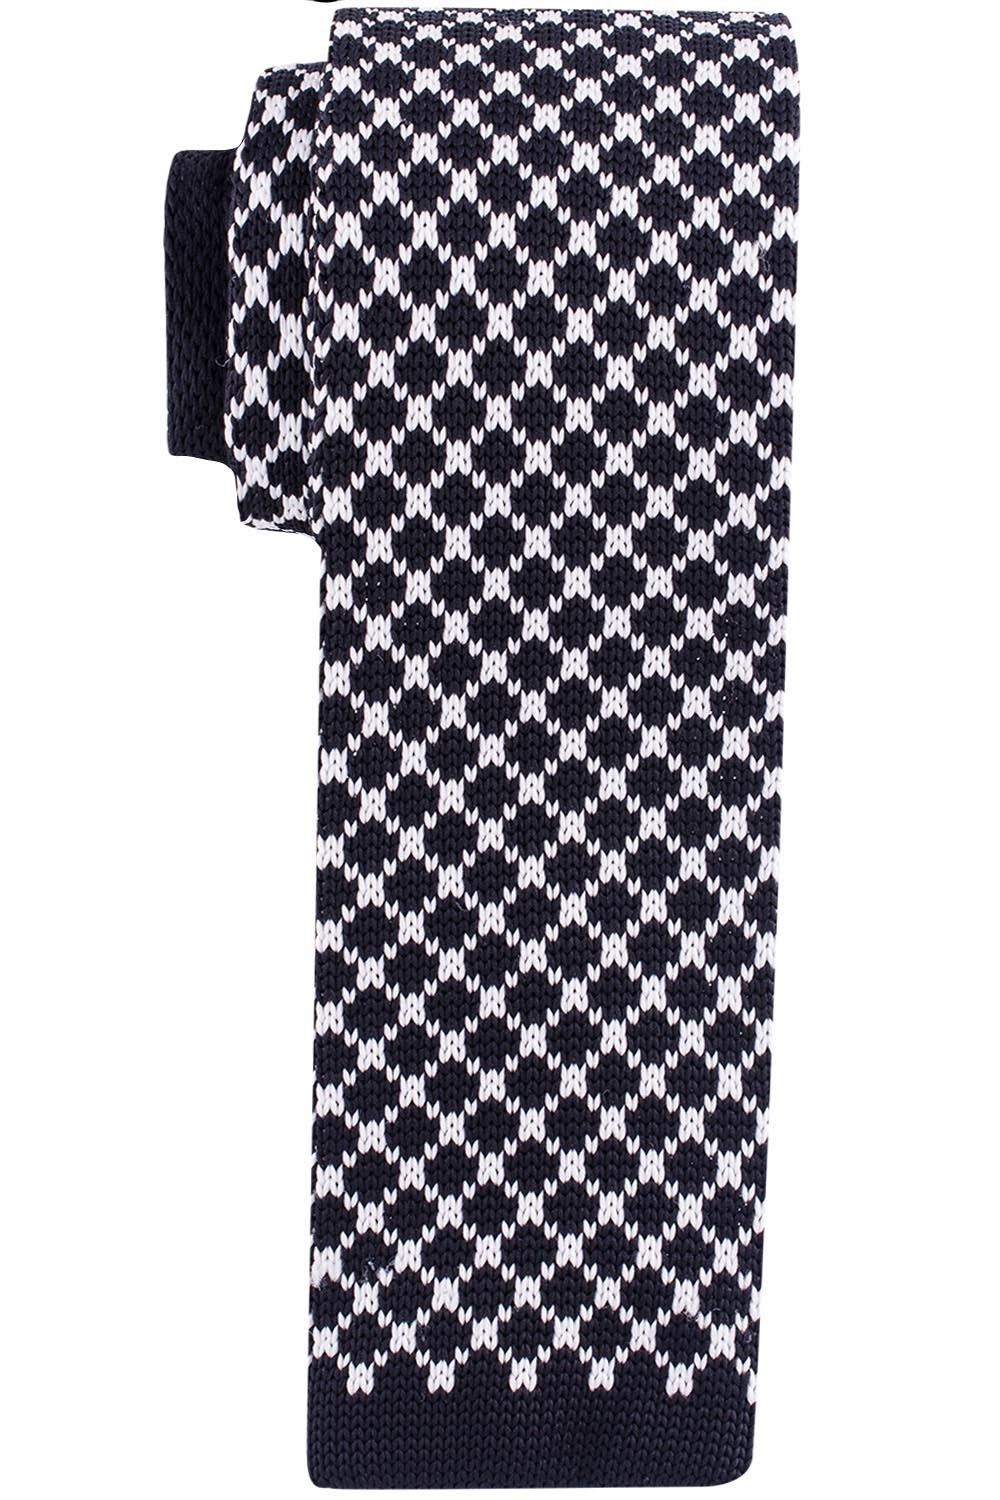 Rancho Plaid Navy Blue Knitted Necktie